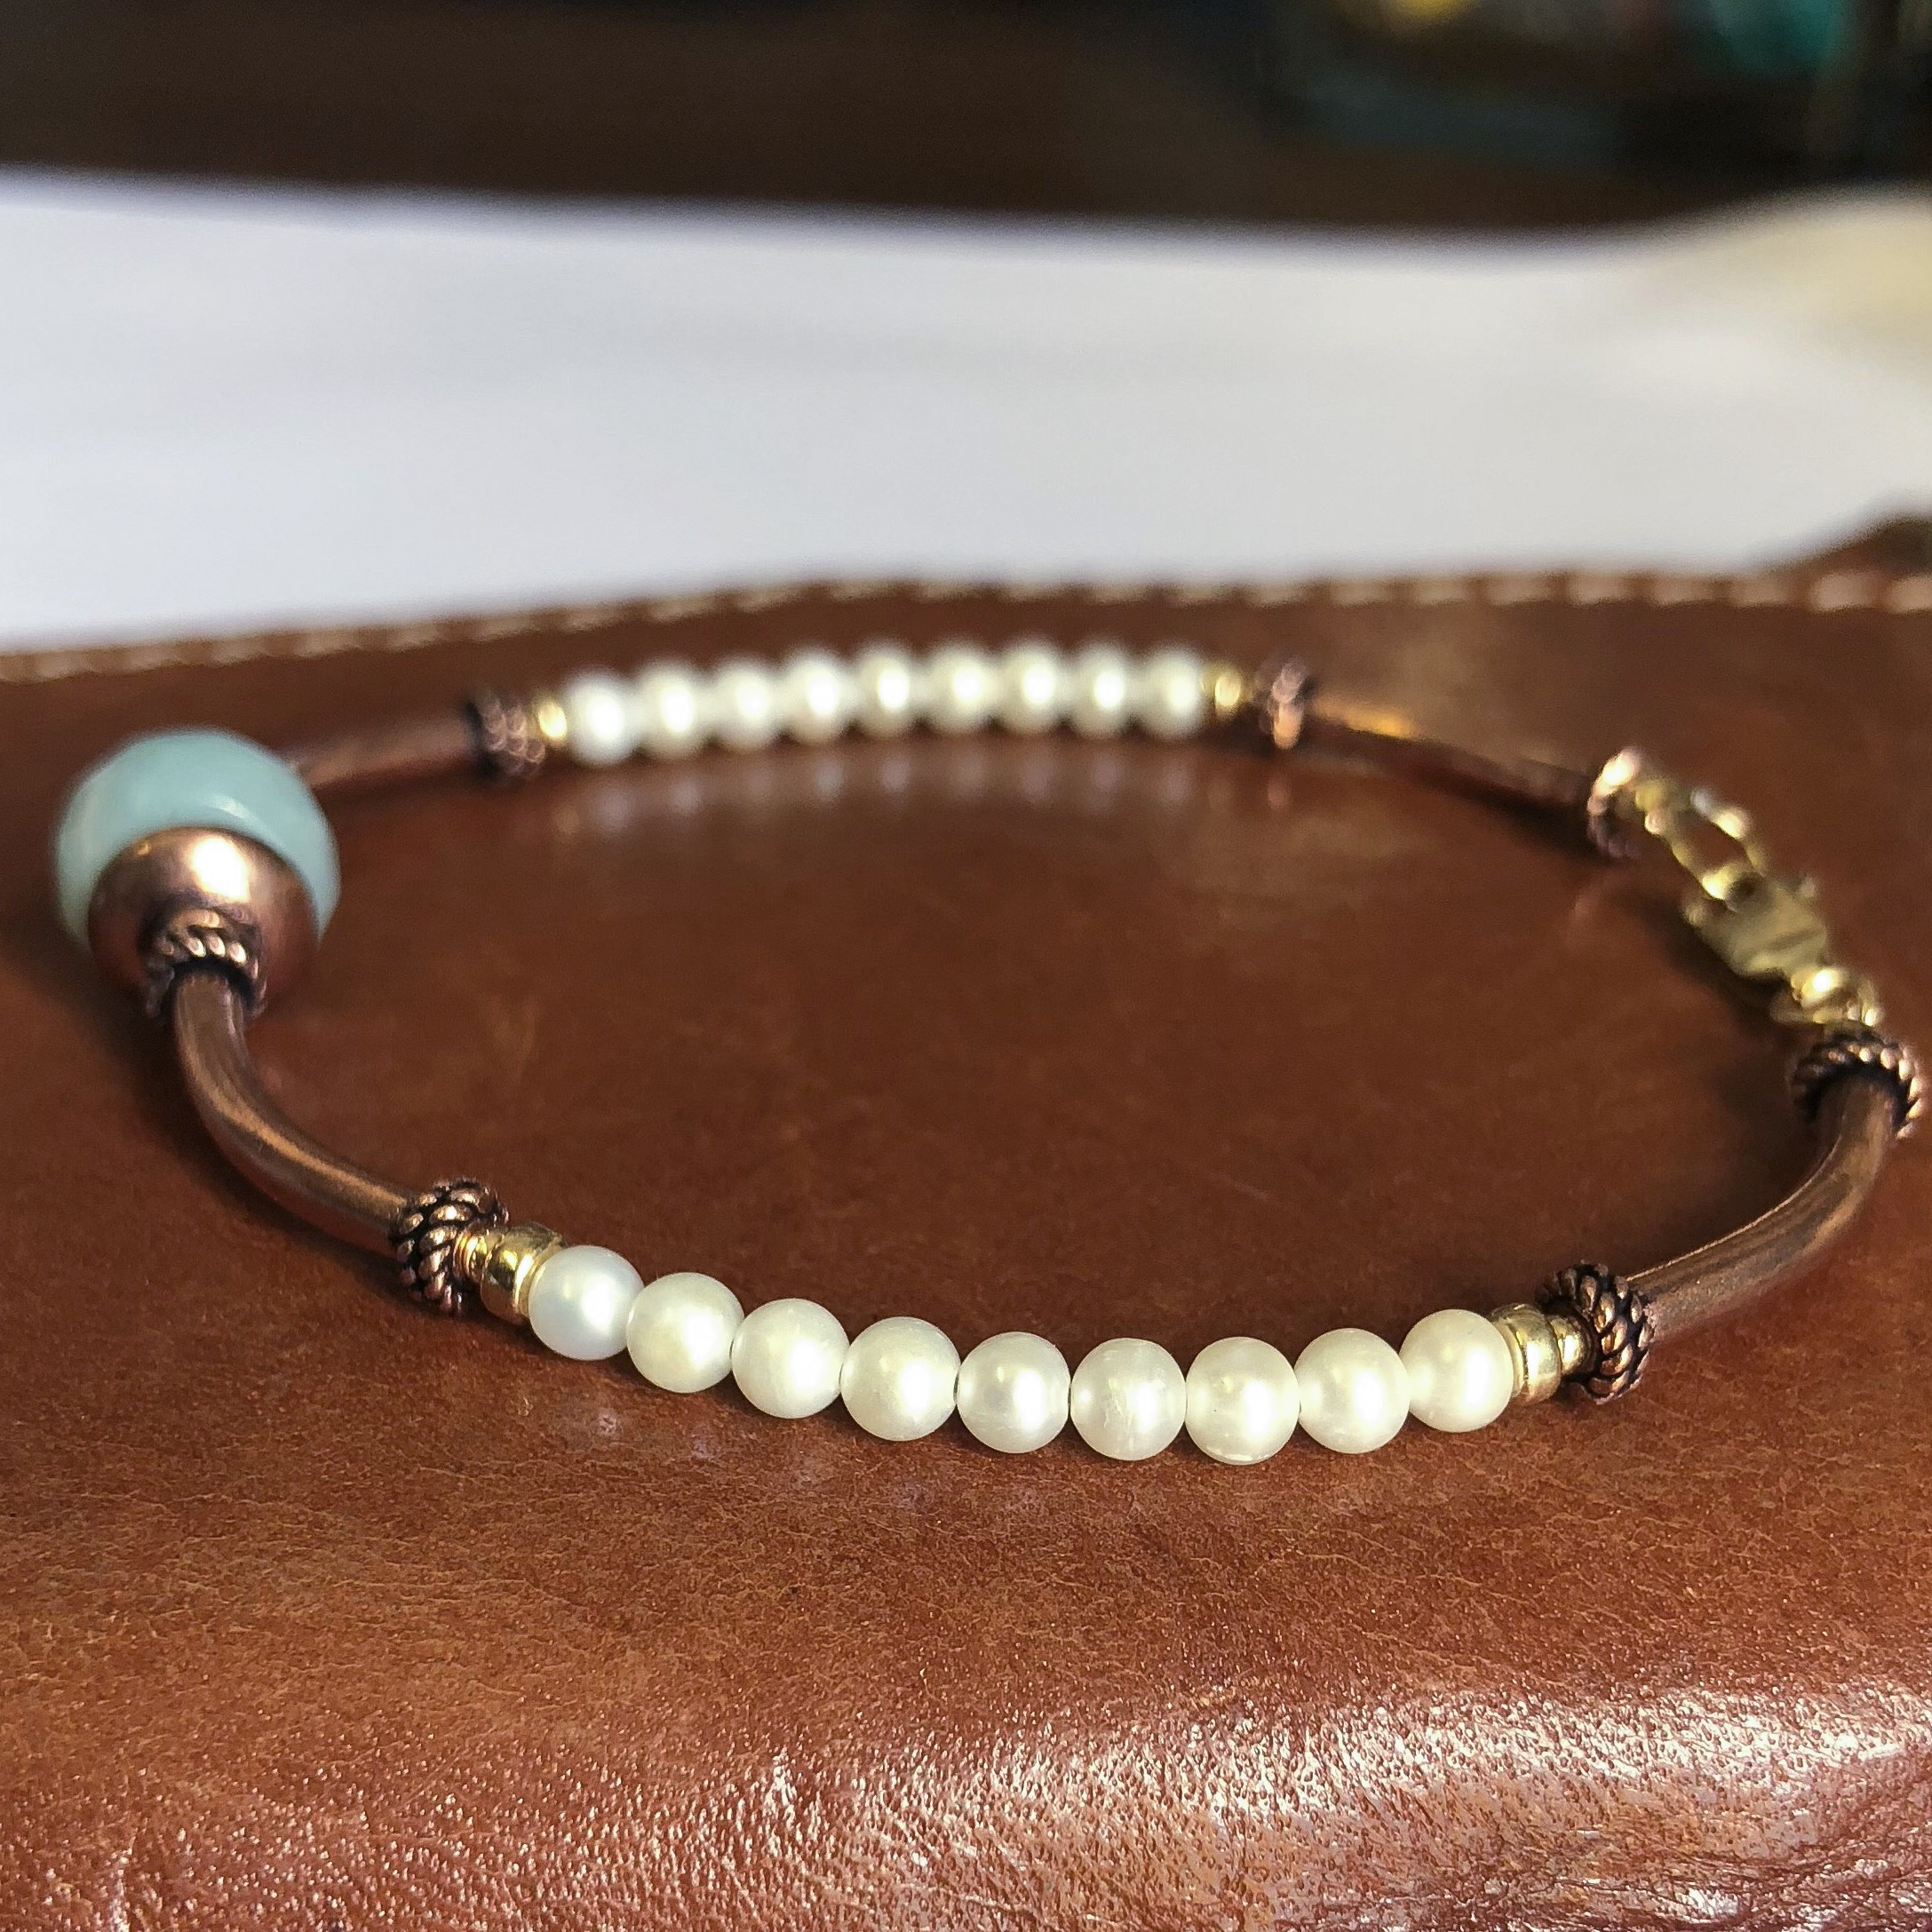 White Pearl Bracelet 3rd 12th 30th Anniversary Gifts For Women Her Wife Jewelry